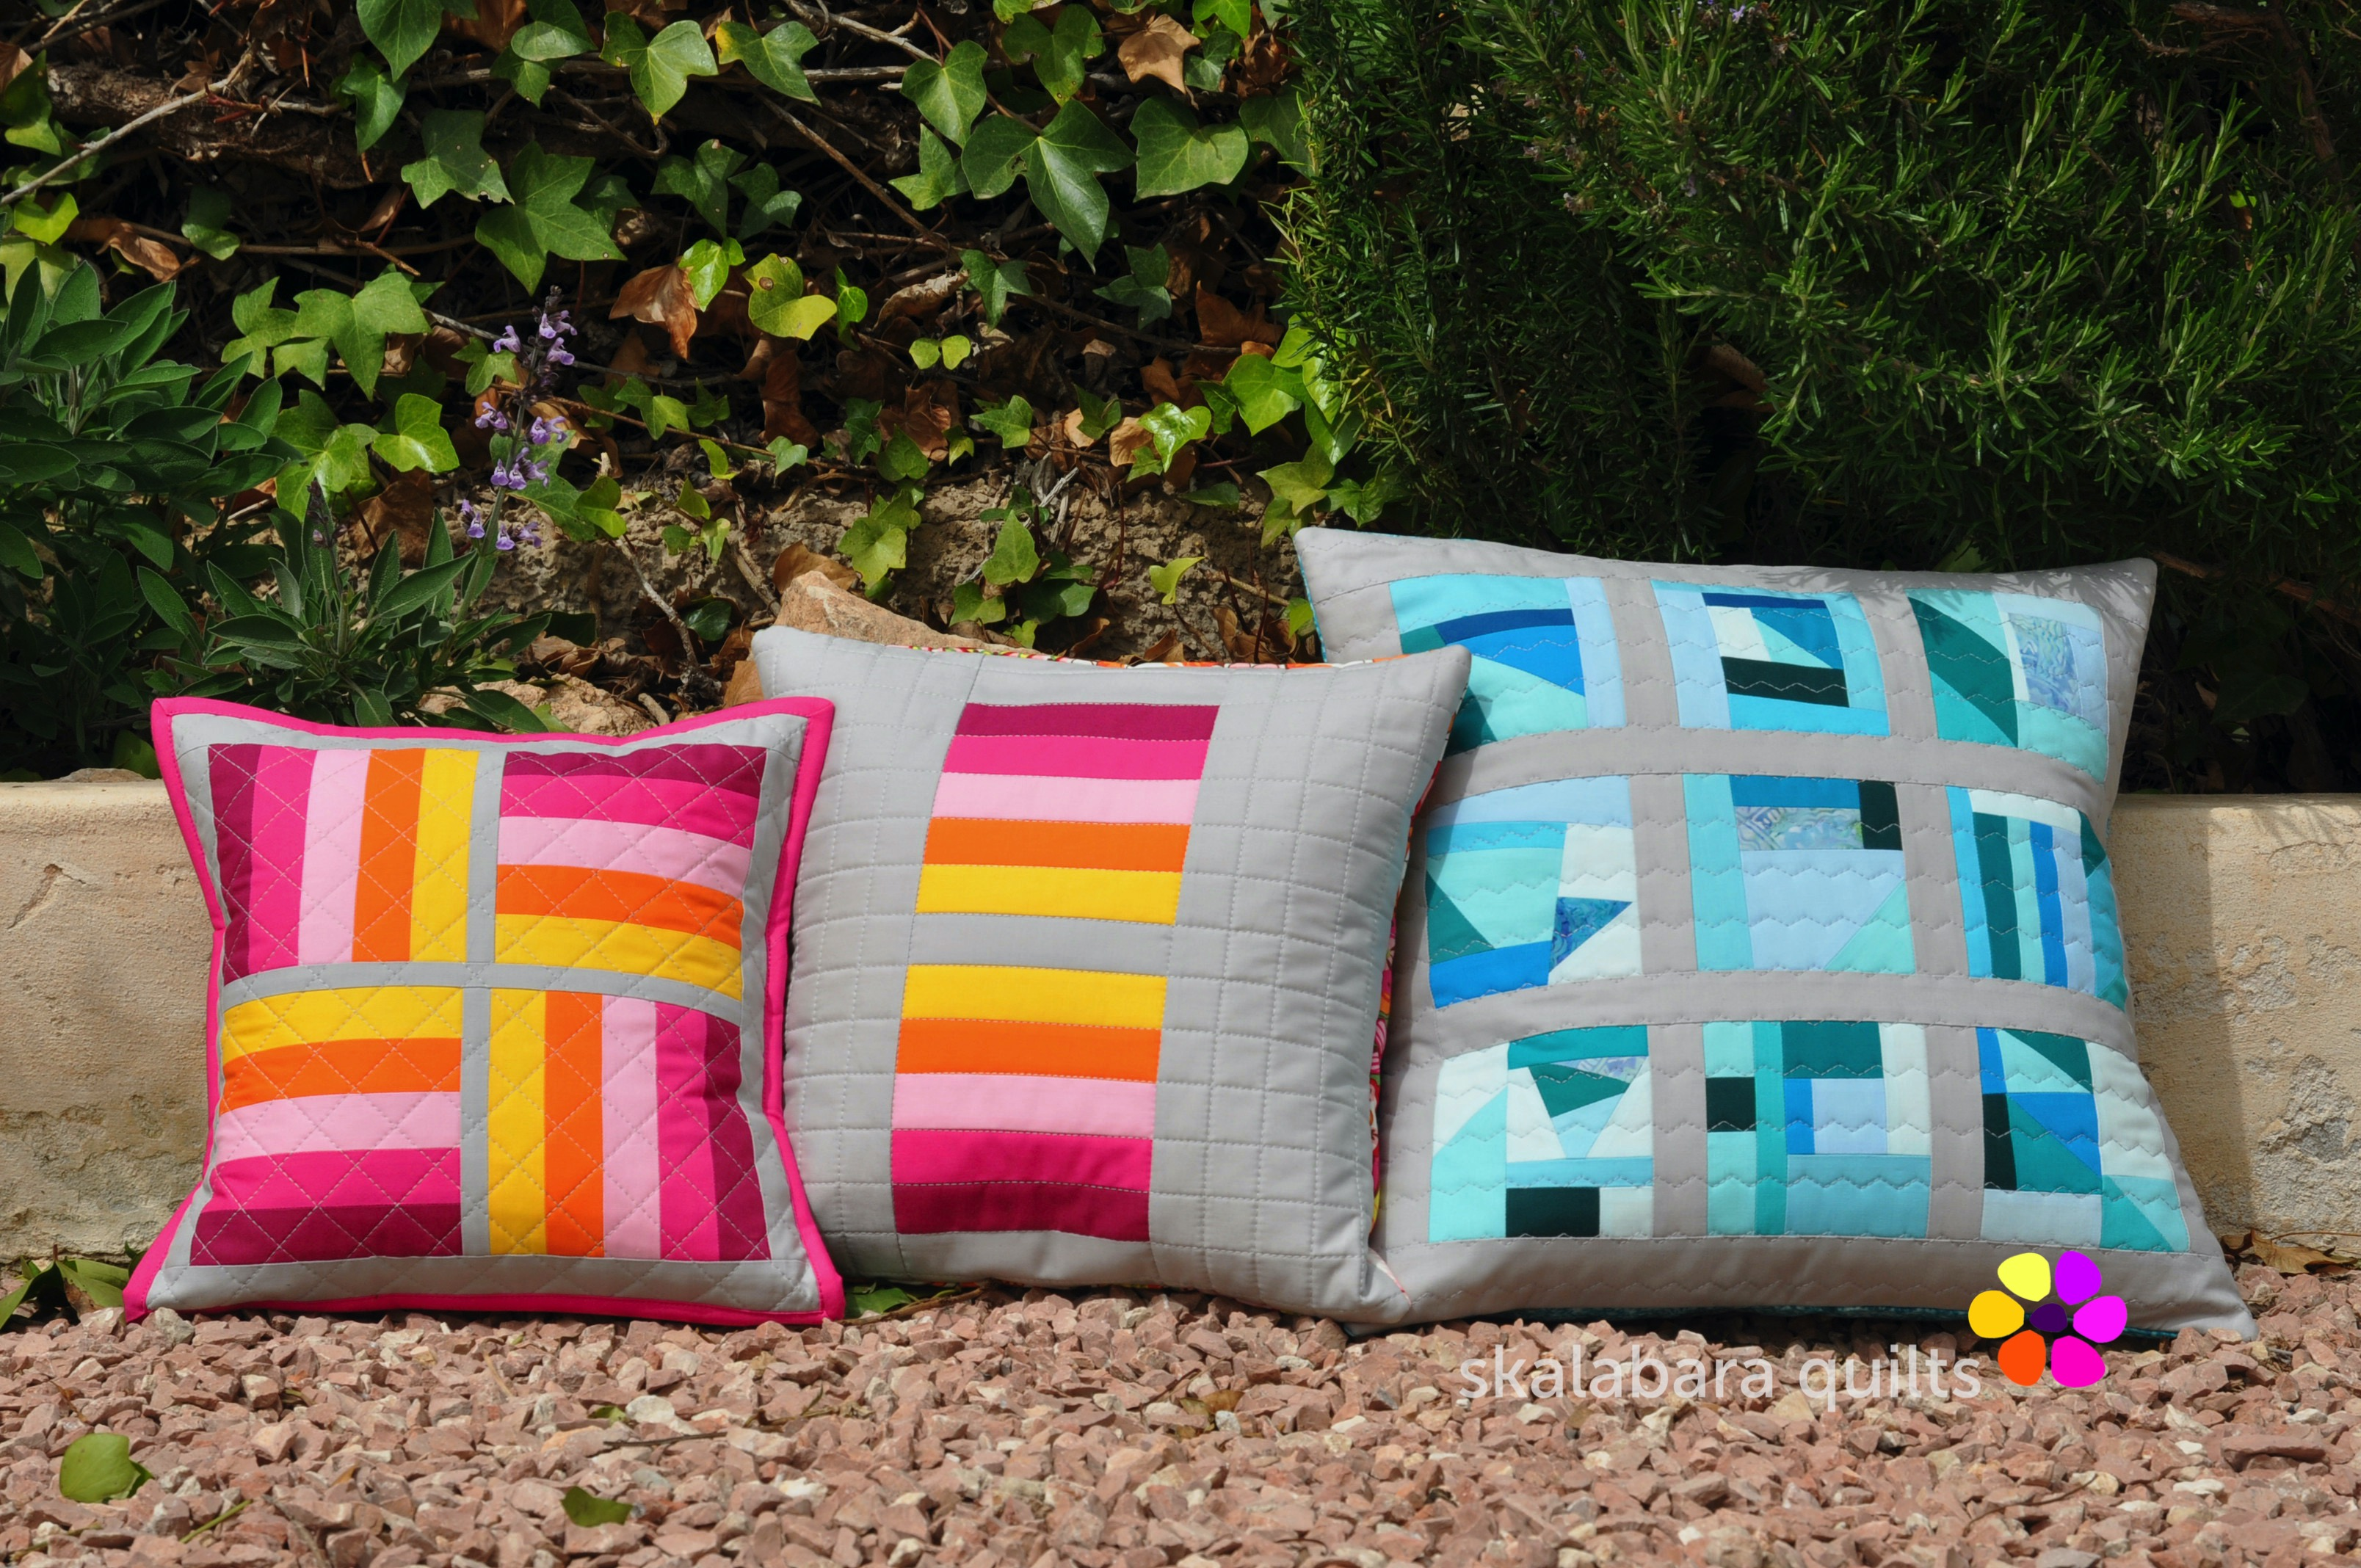 april cushions 2 - skalabara quilts